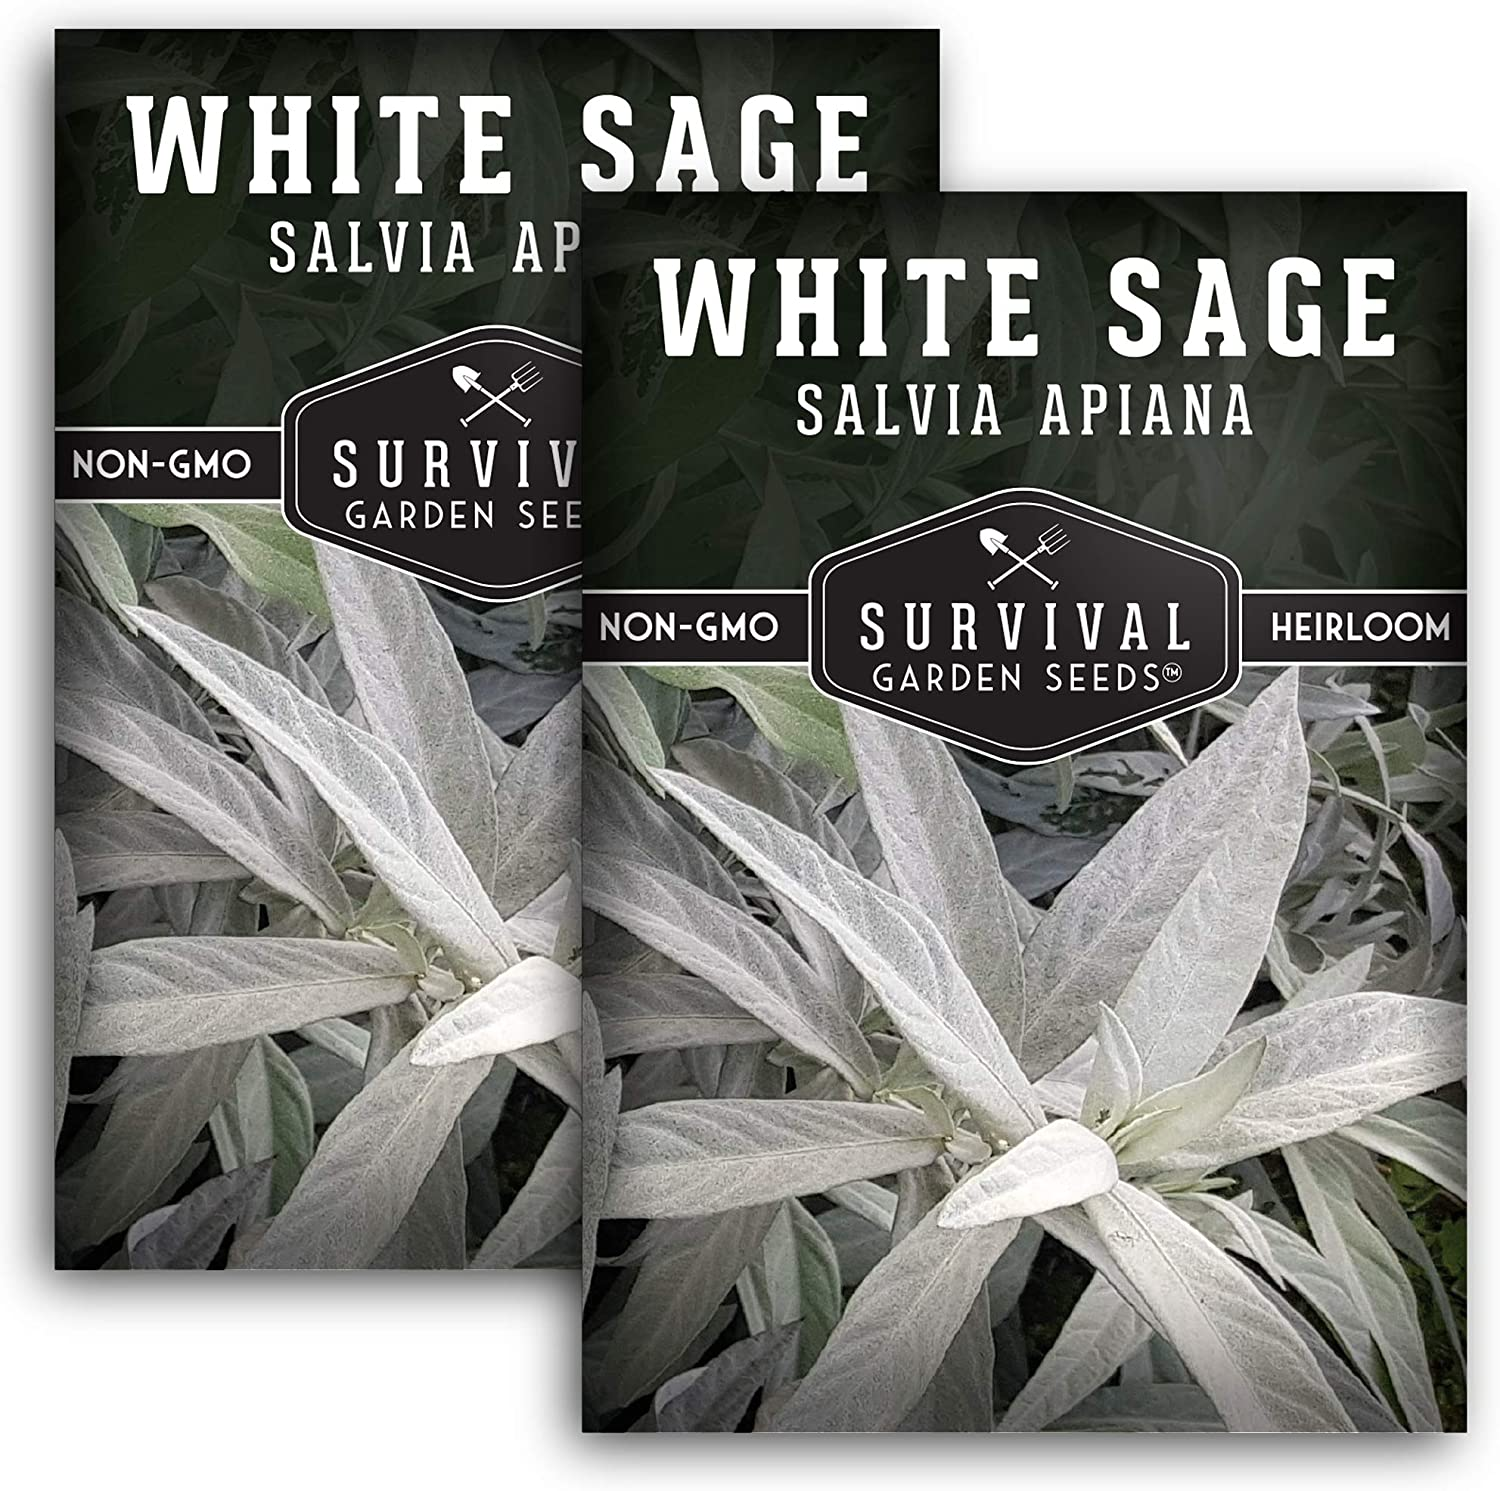 Survival Garden Seeds - White Sage Seed for Planting - Grow Your Own Smudging Incense - 2 Packets with Instructions to Plant and Grow Your Home Garden - Non-GMO Heirloom Variety